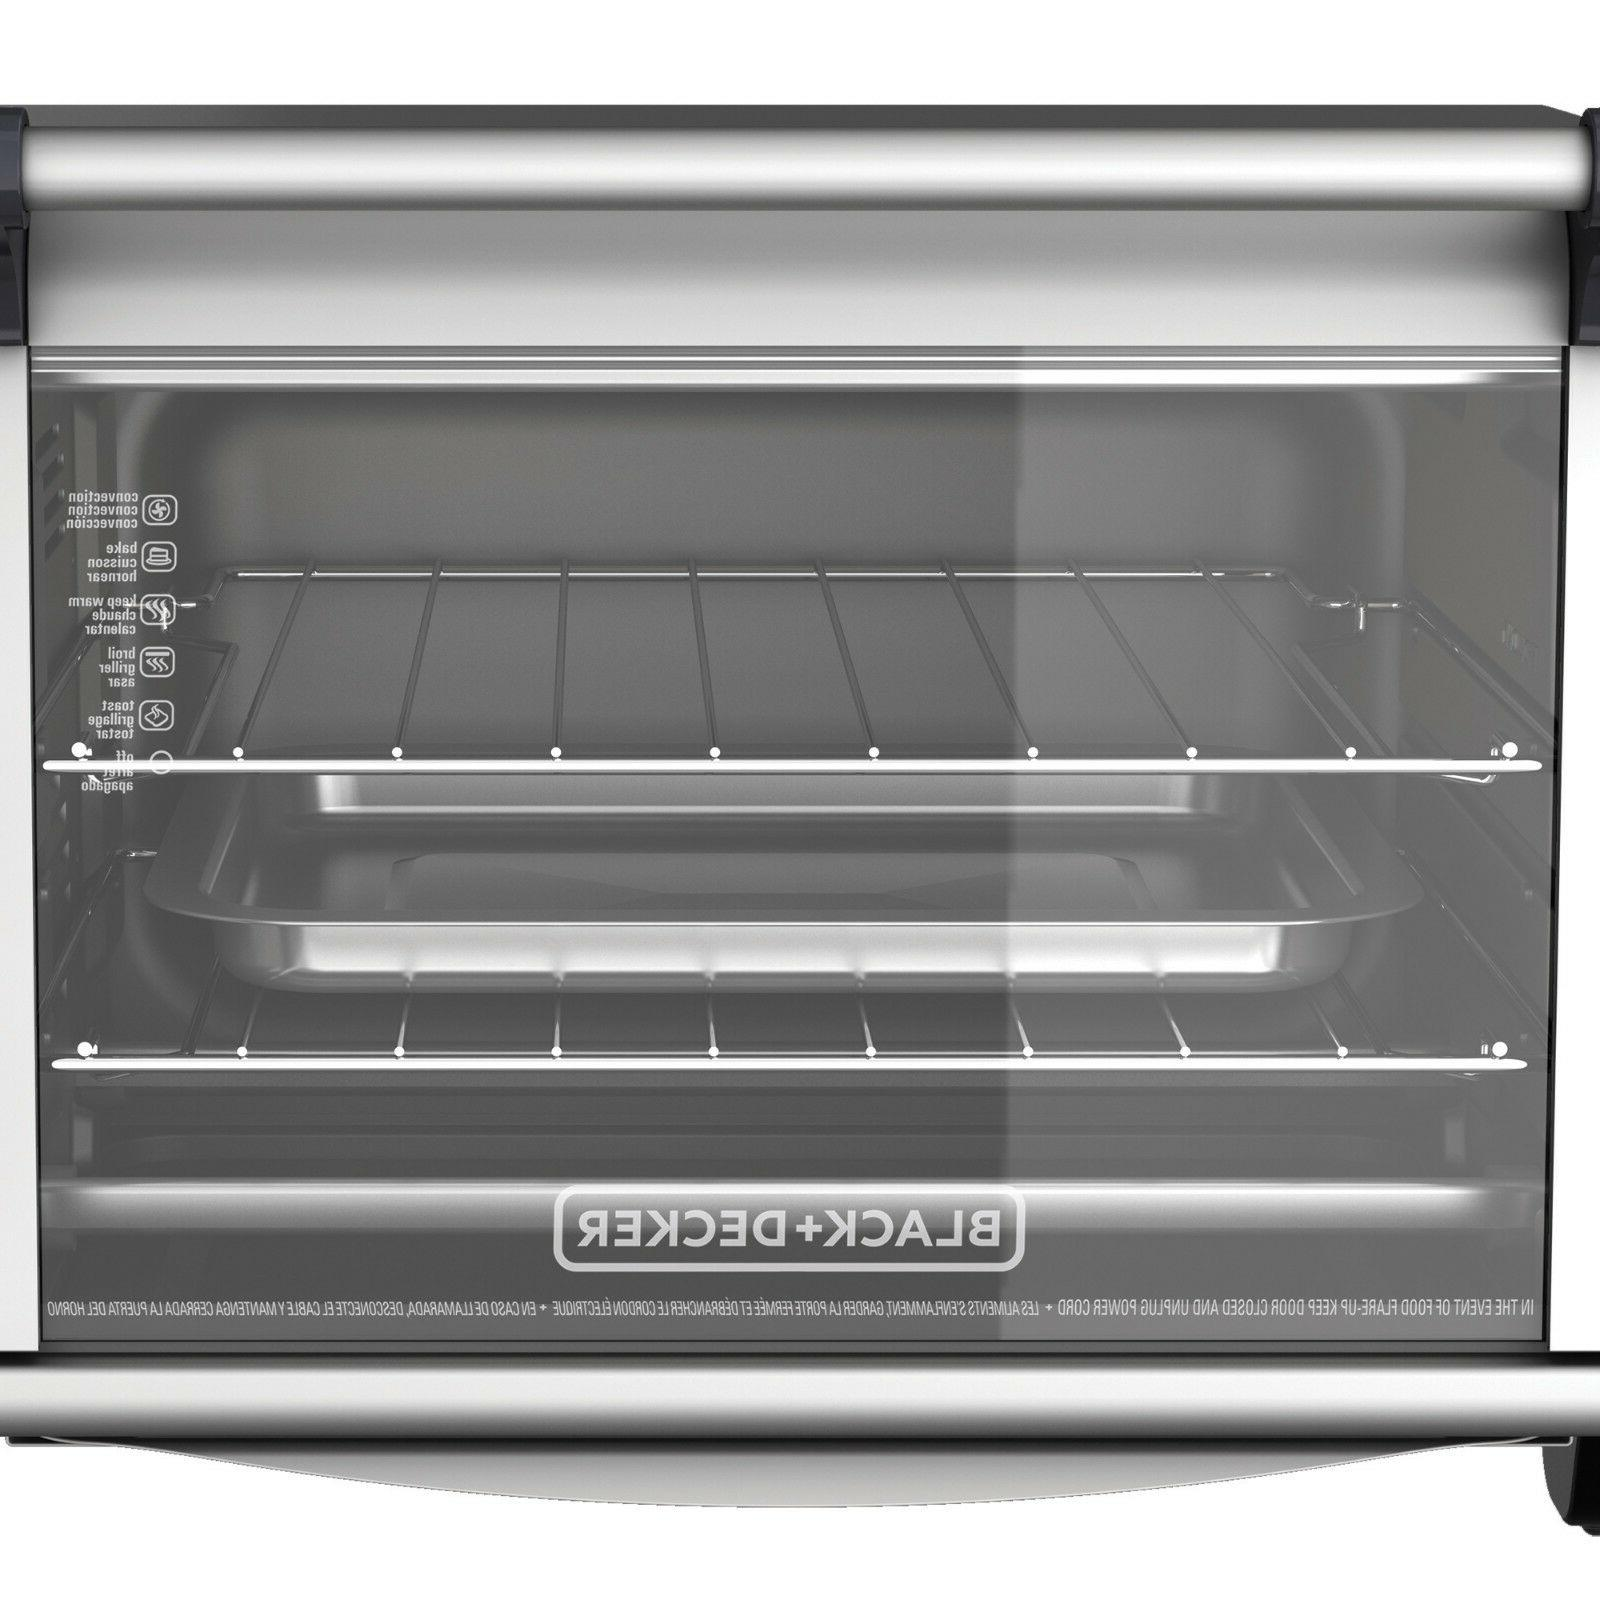 Convection Toaster Baking Eating Food Fast Smart